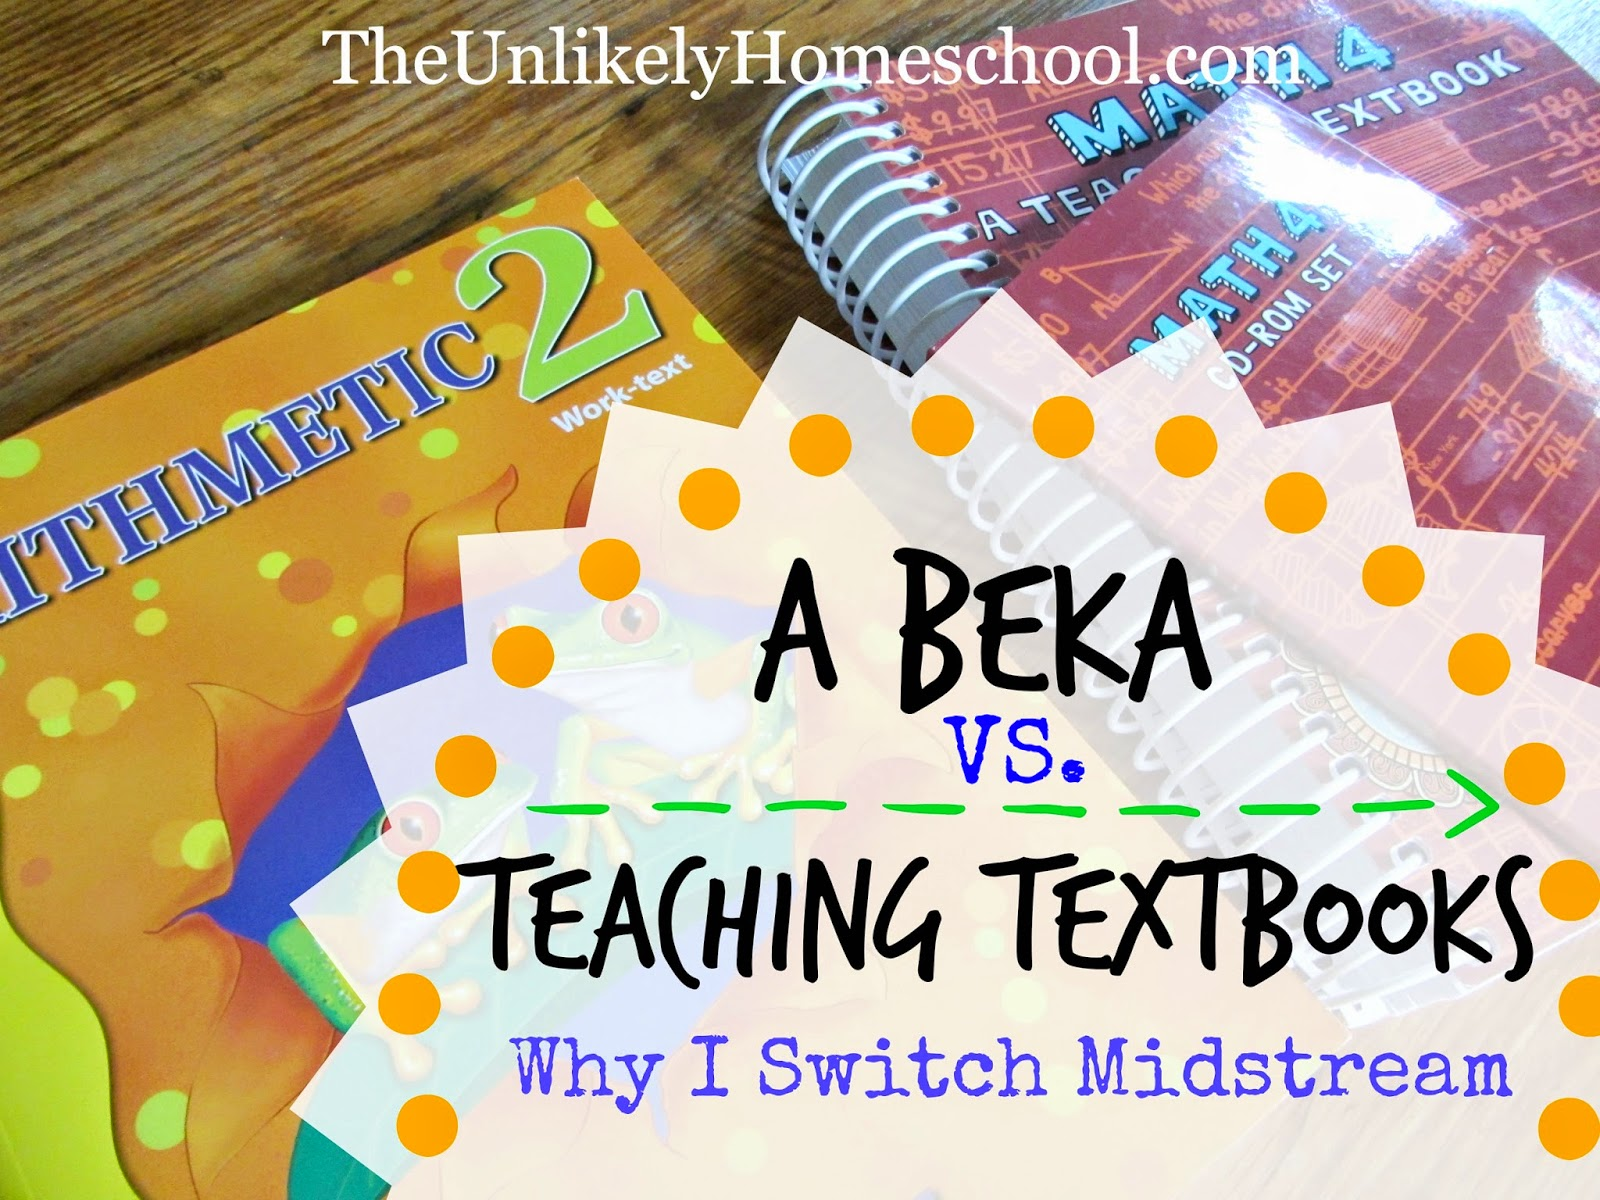 A Beka VS. Teaching Textbooks: Why I Switch Midstream {The Unlikely Homeschool}